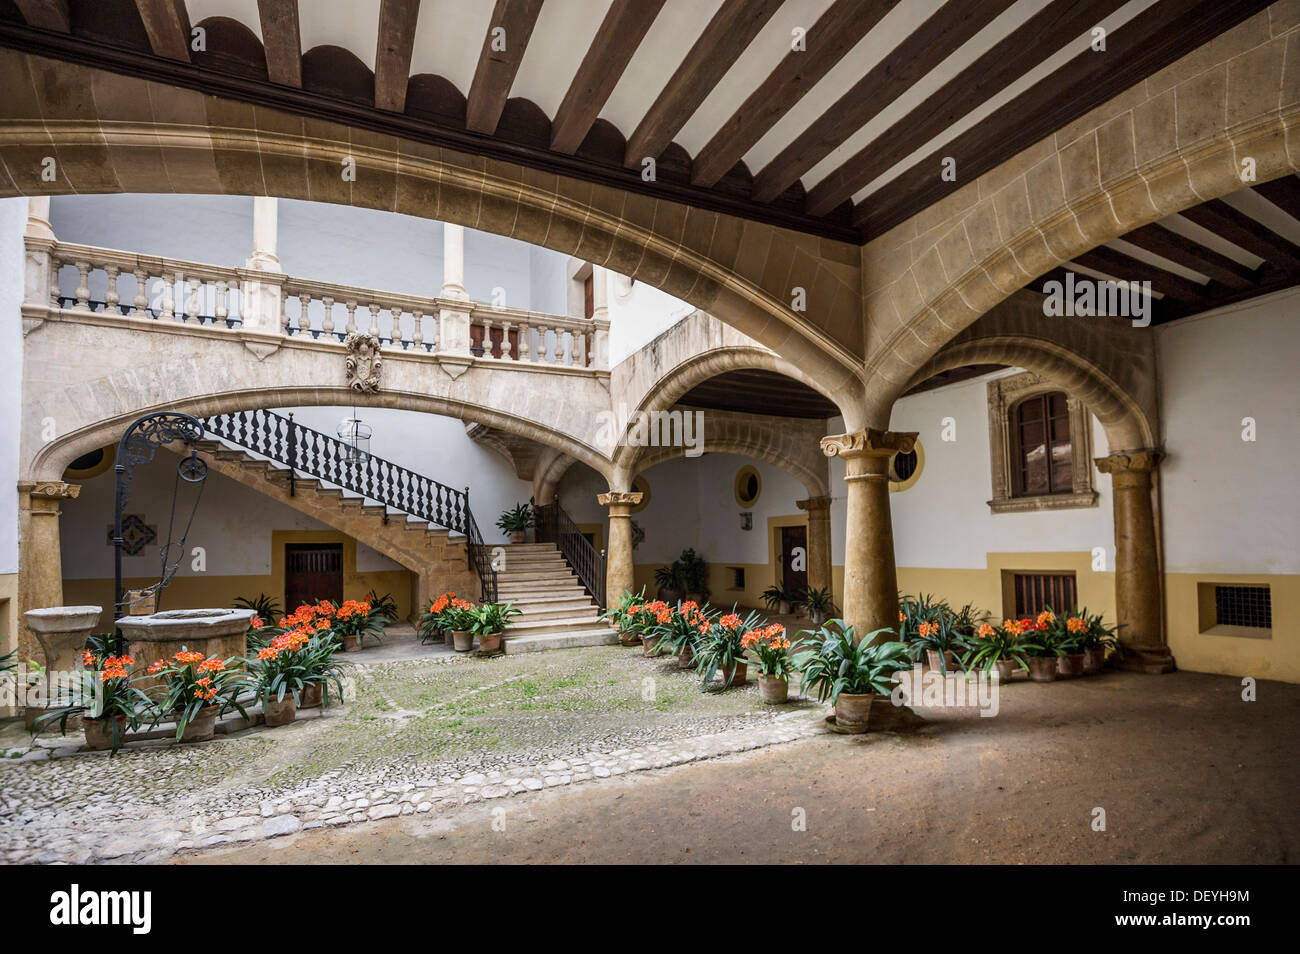 Courtyard of an old house with flower pots in the old Old world house plans courtyard